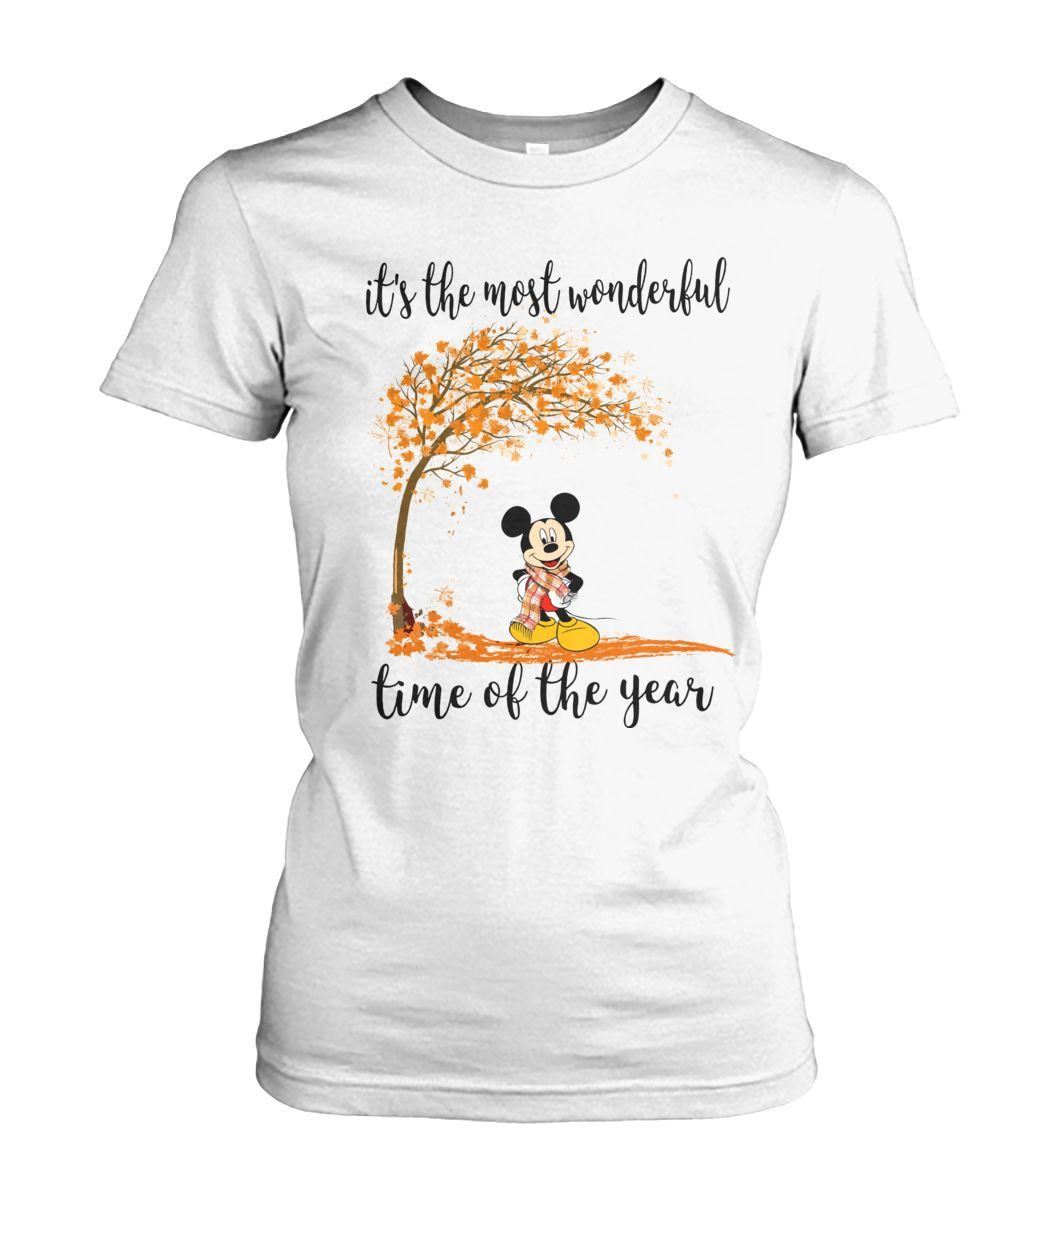 Mickey it's the most wonderful time of the year Ladies tee